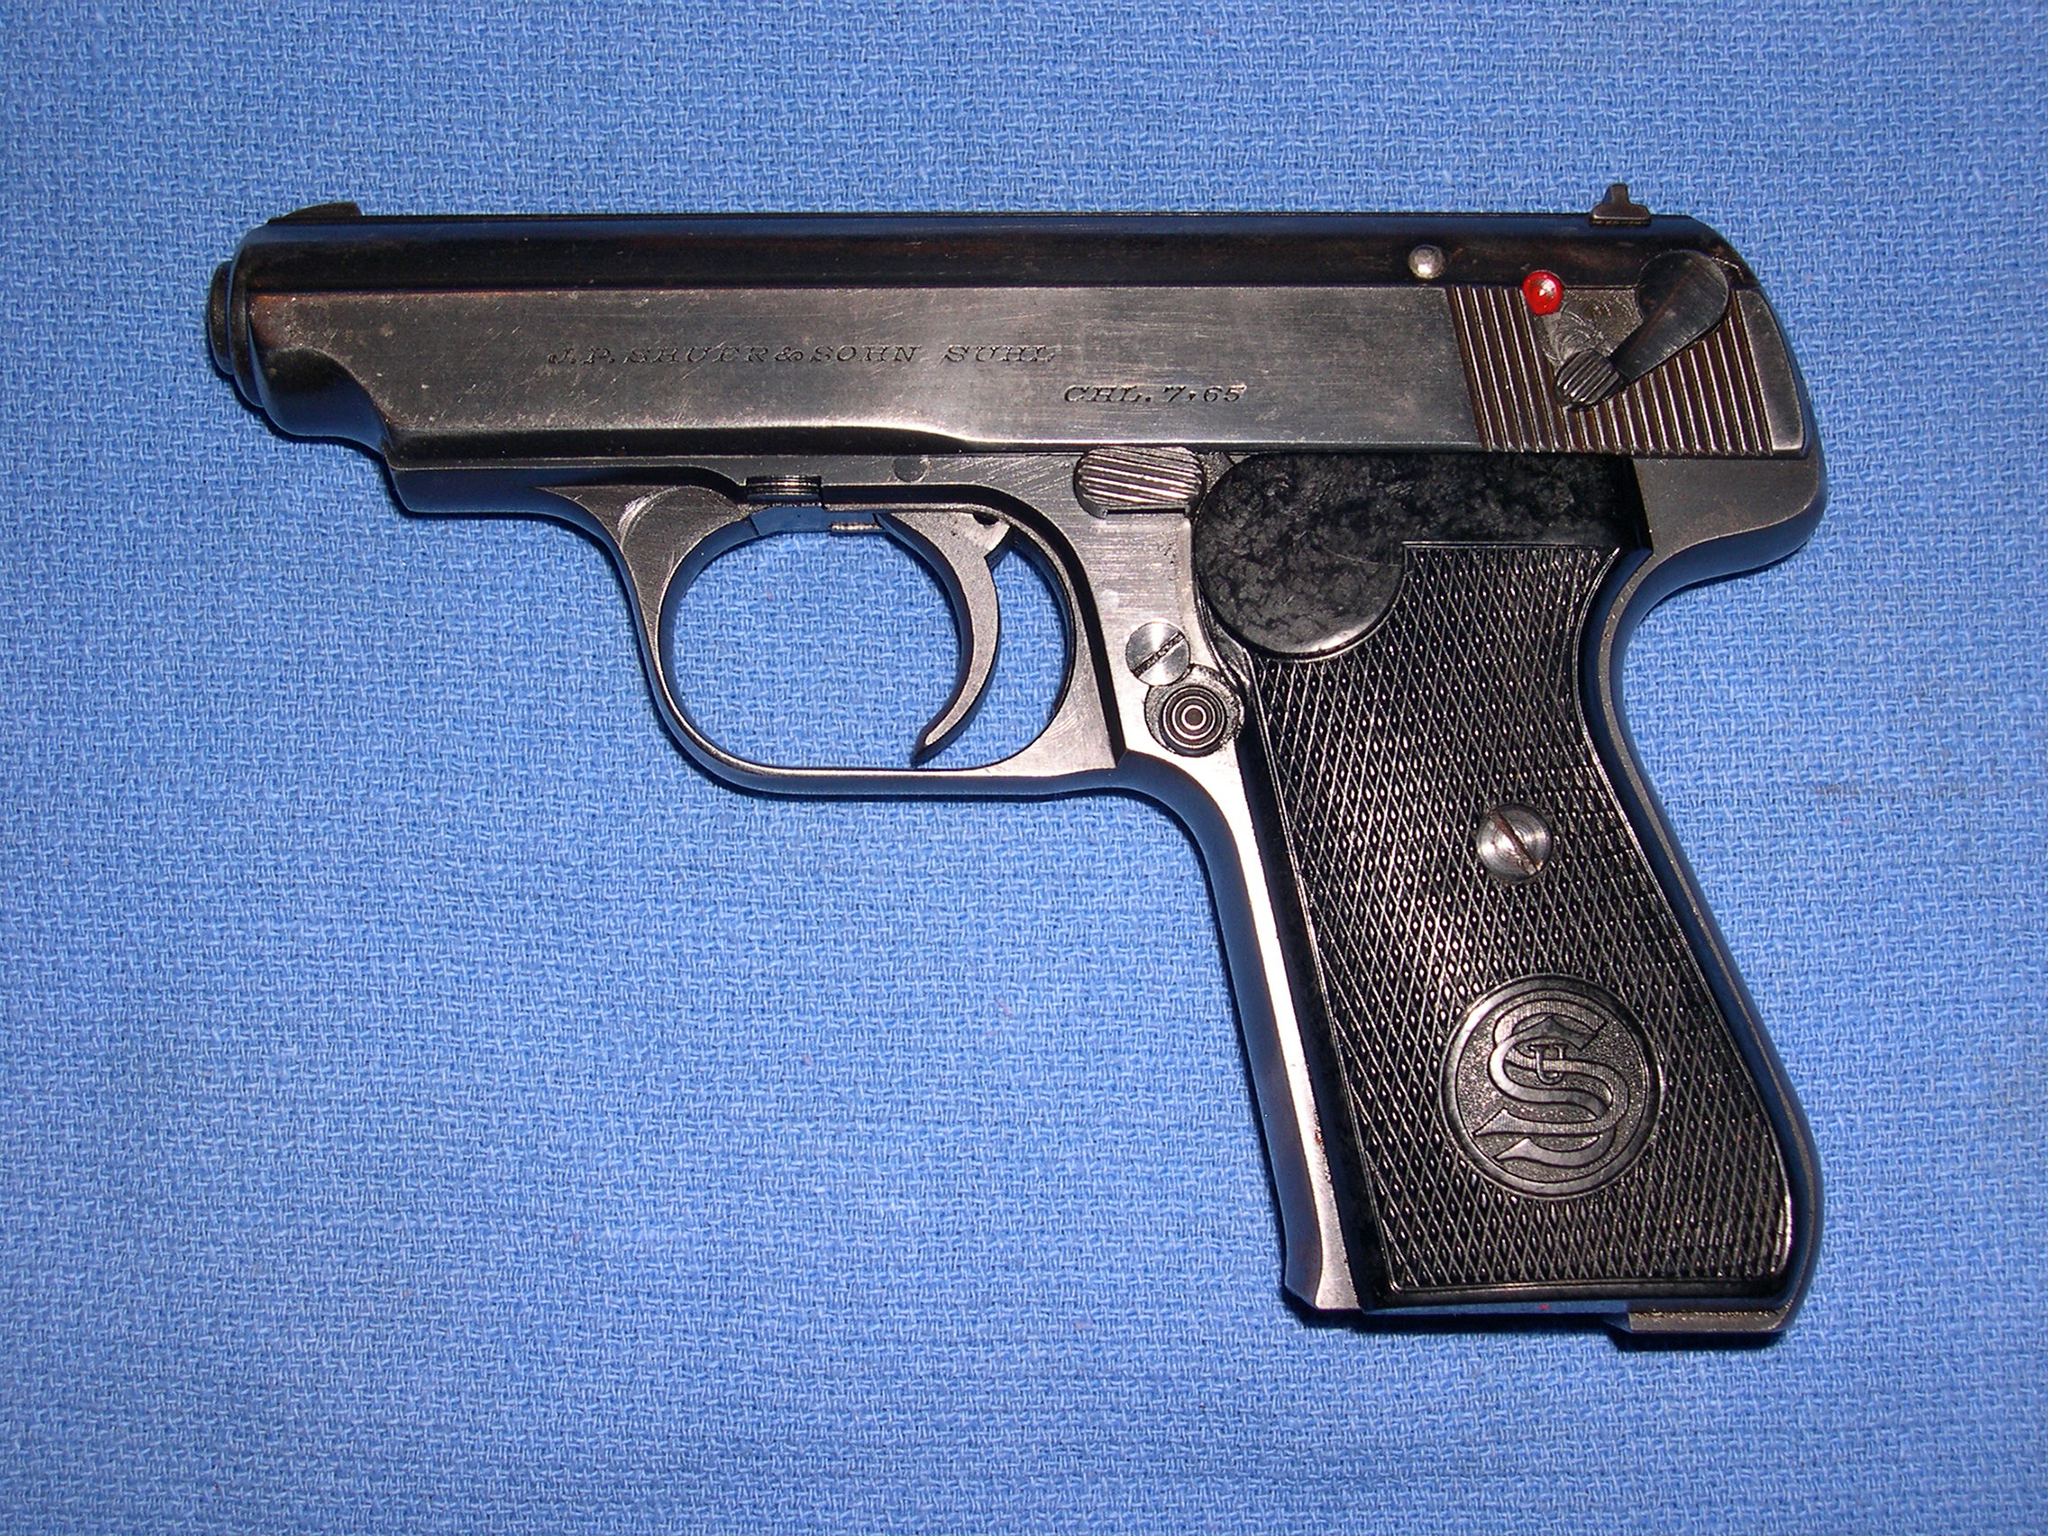 Sauer und Sohn 38H, semiautomatic pistol, chambered in 7.65 Browning caliber, left side.